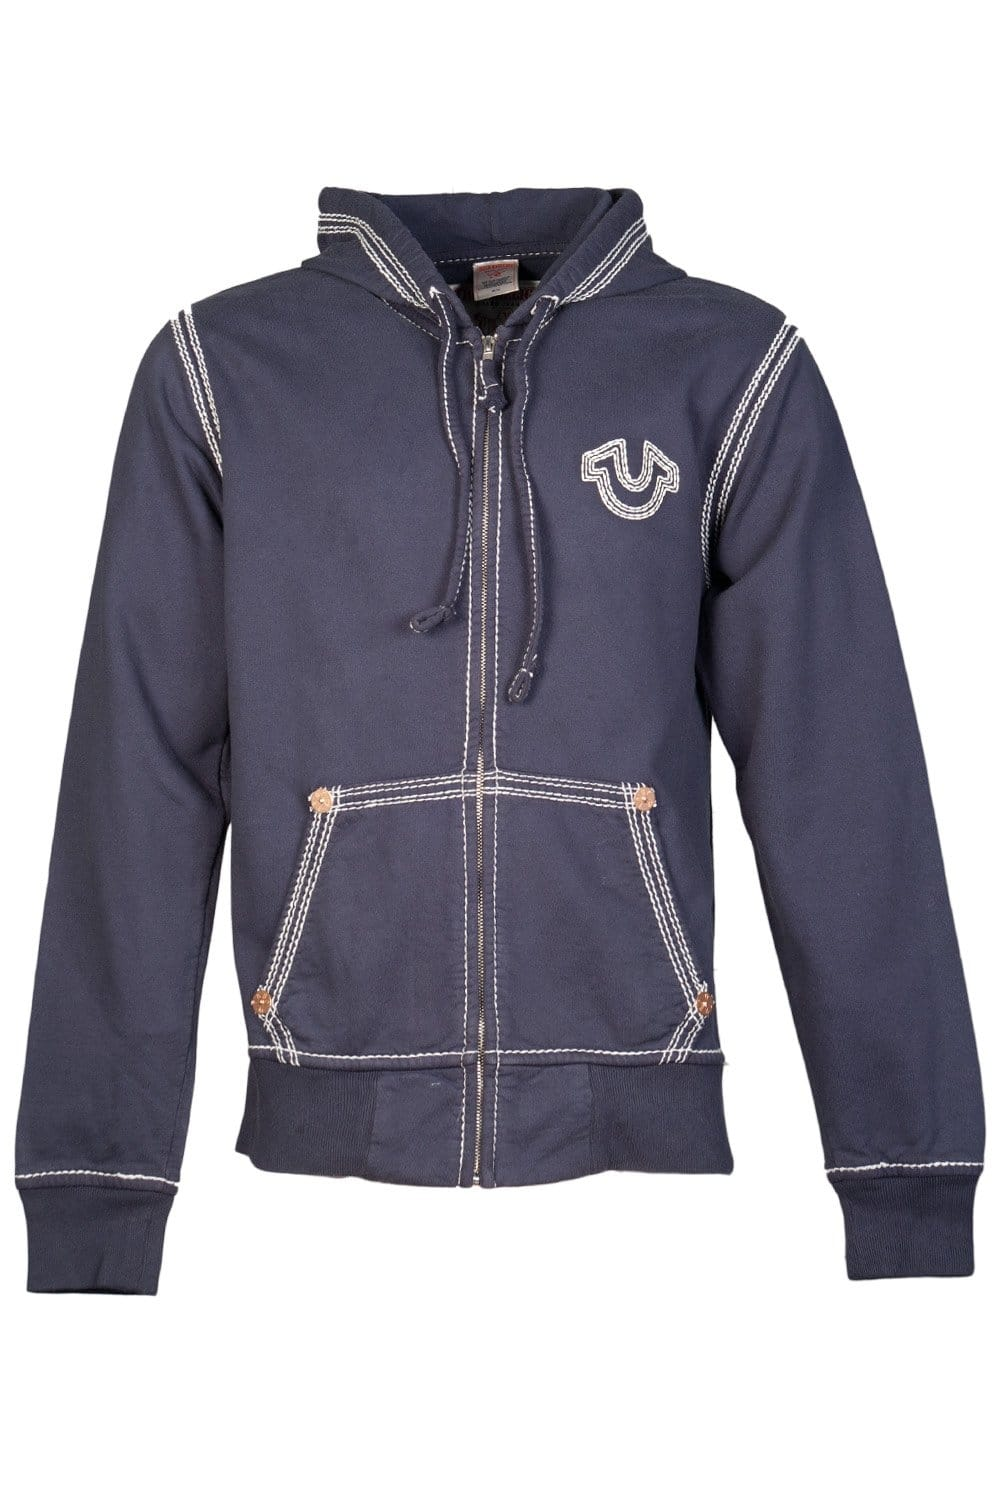 True Religion Zip Up Hoodie in Navy Blue 1240000012-4101 - True Religion from Sage Clothing UK